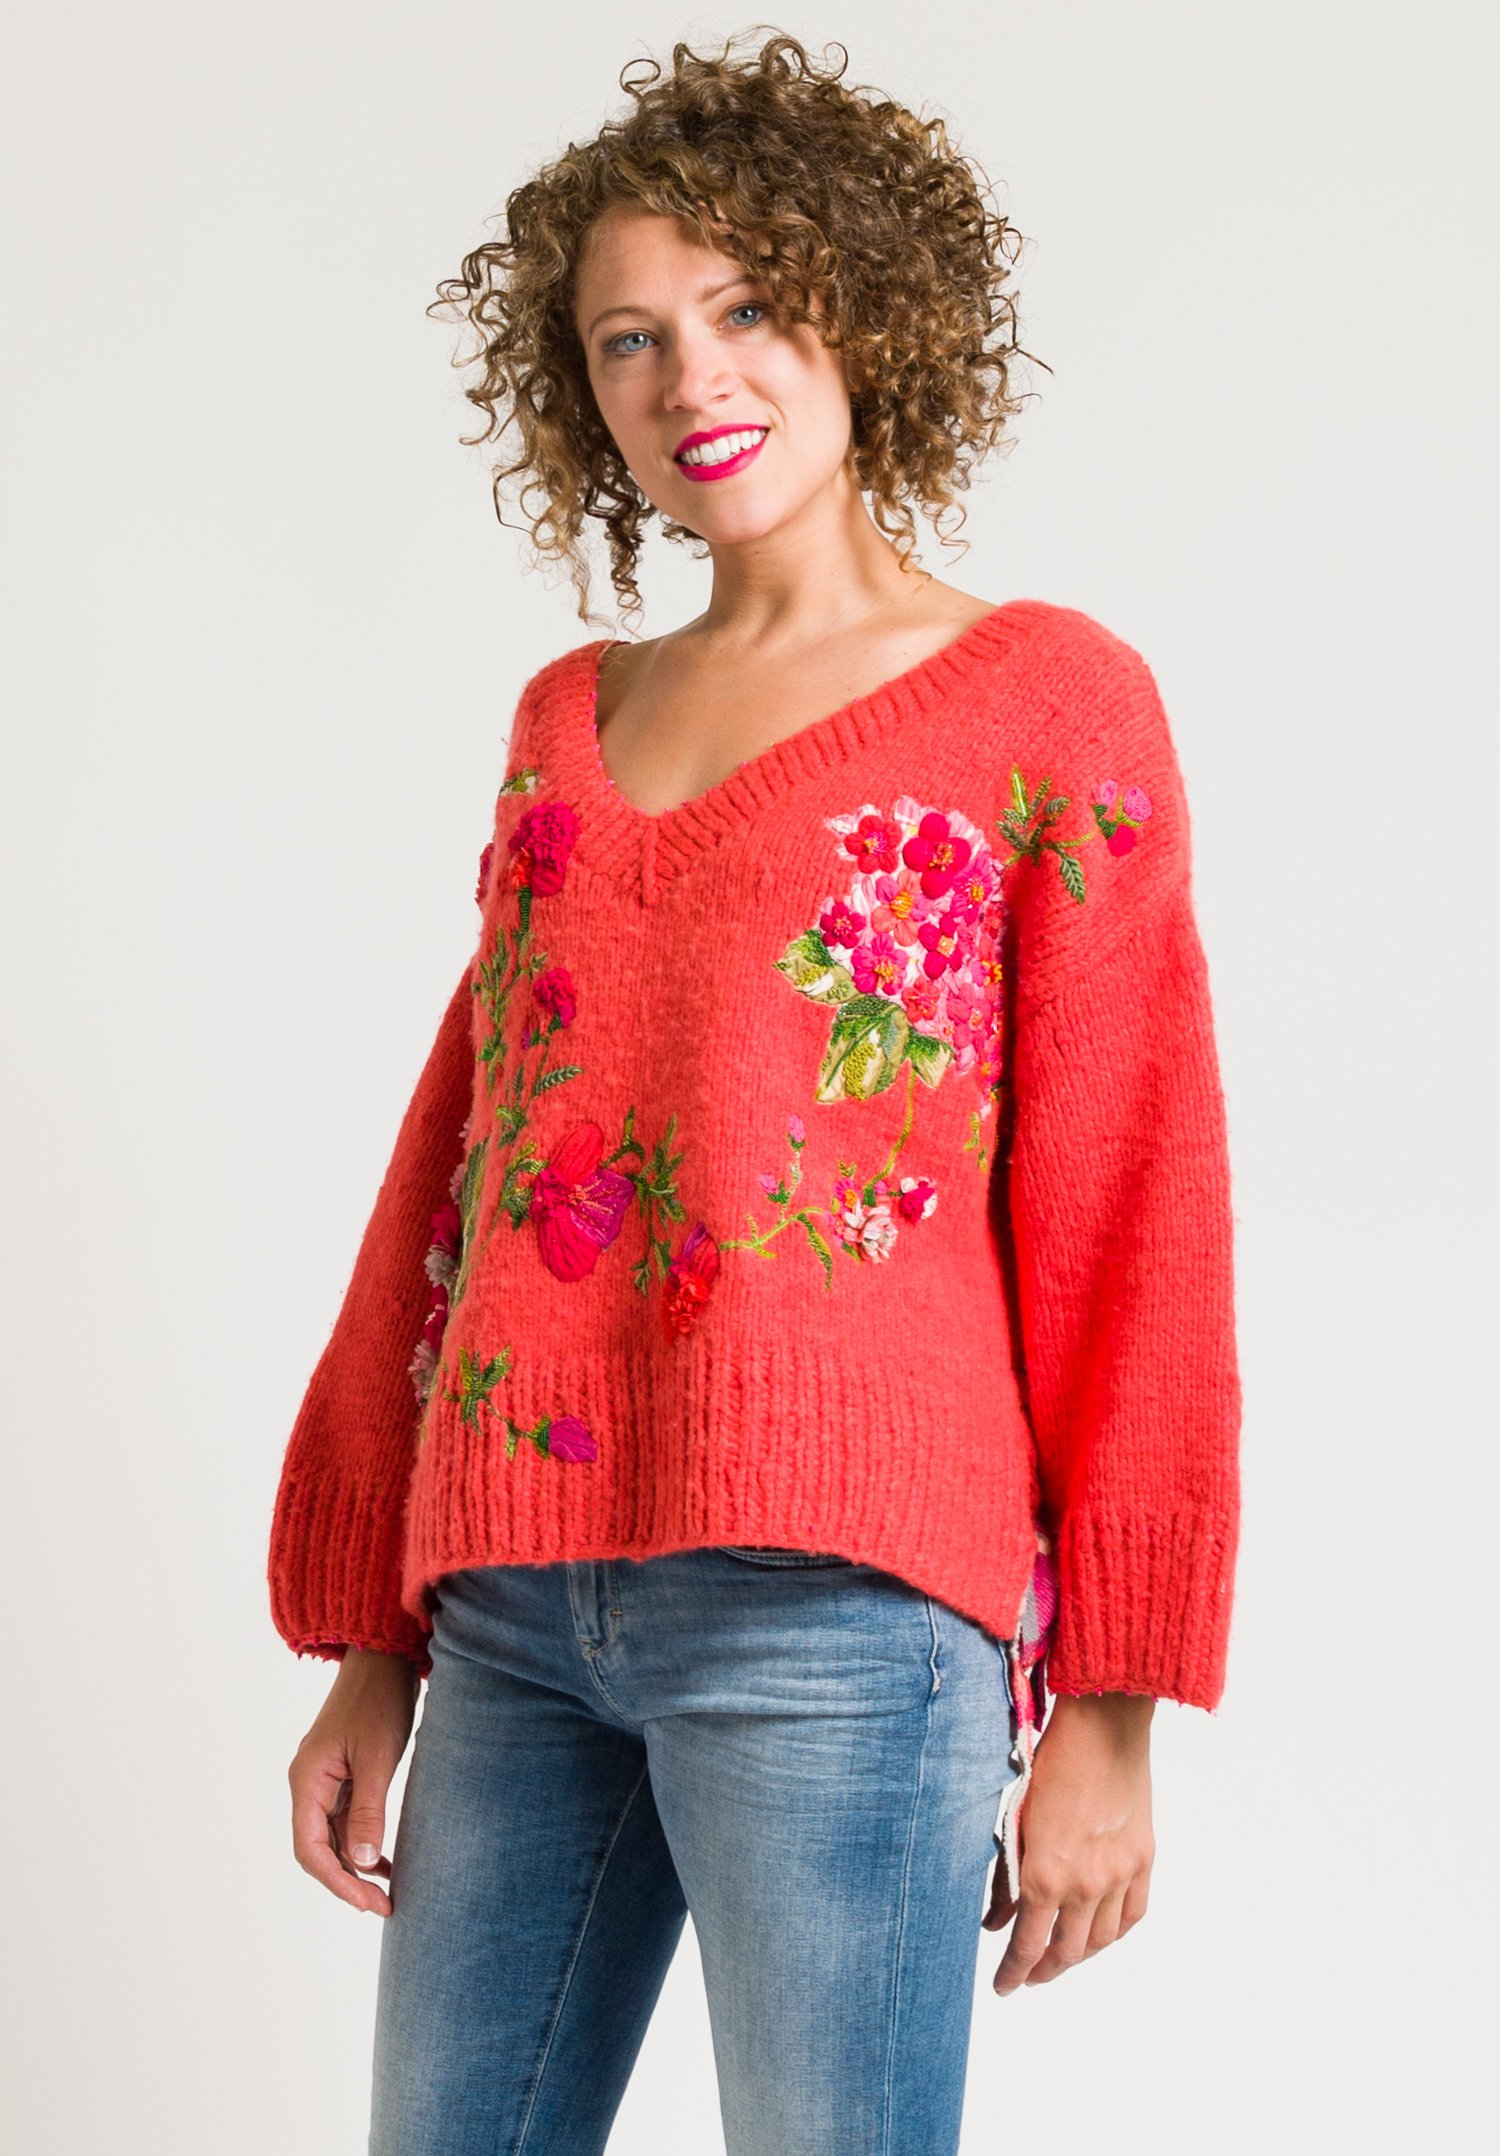 P 233 Ro Beaded Amp Embroidered Flower Sweater In Coral Santa